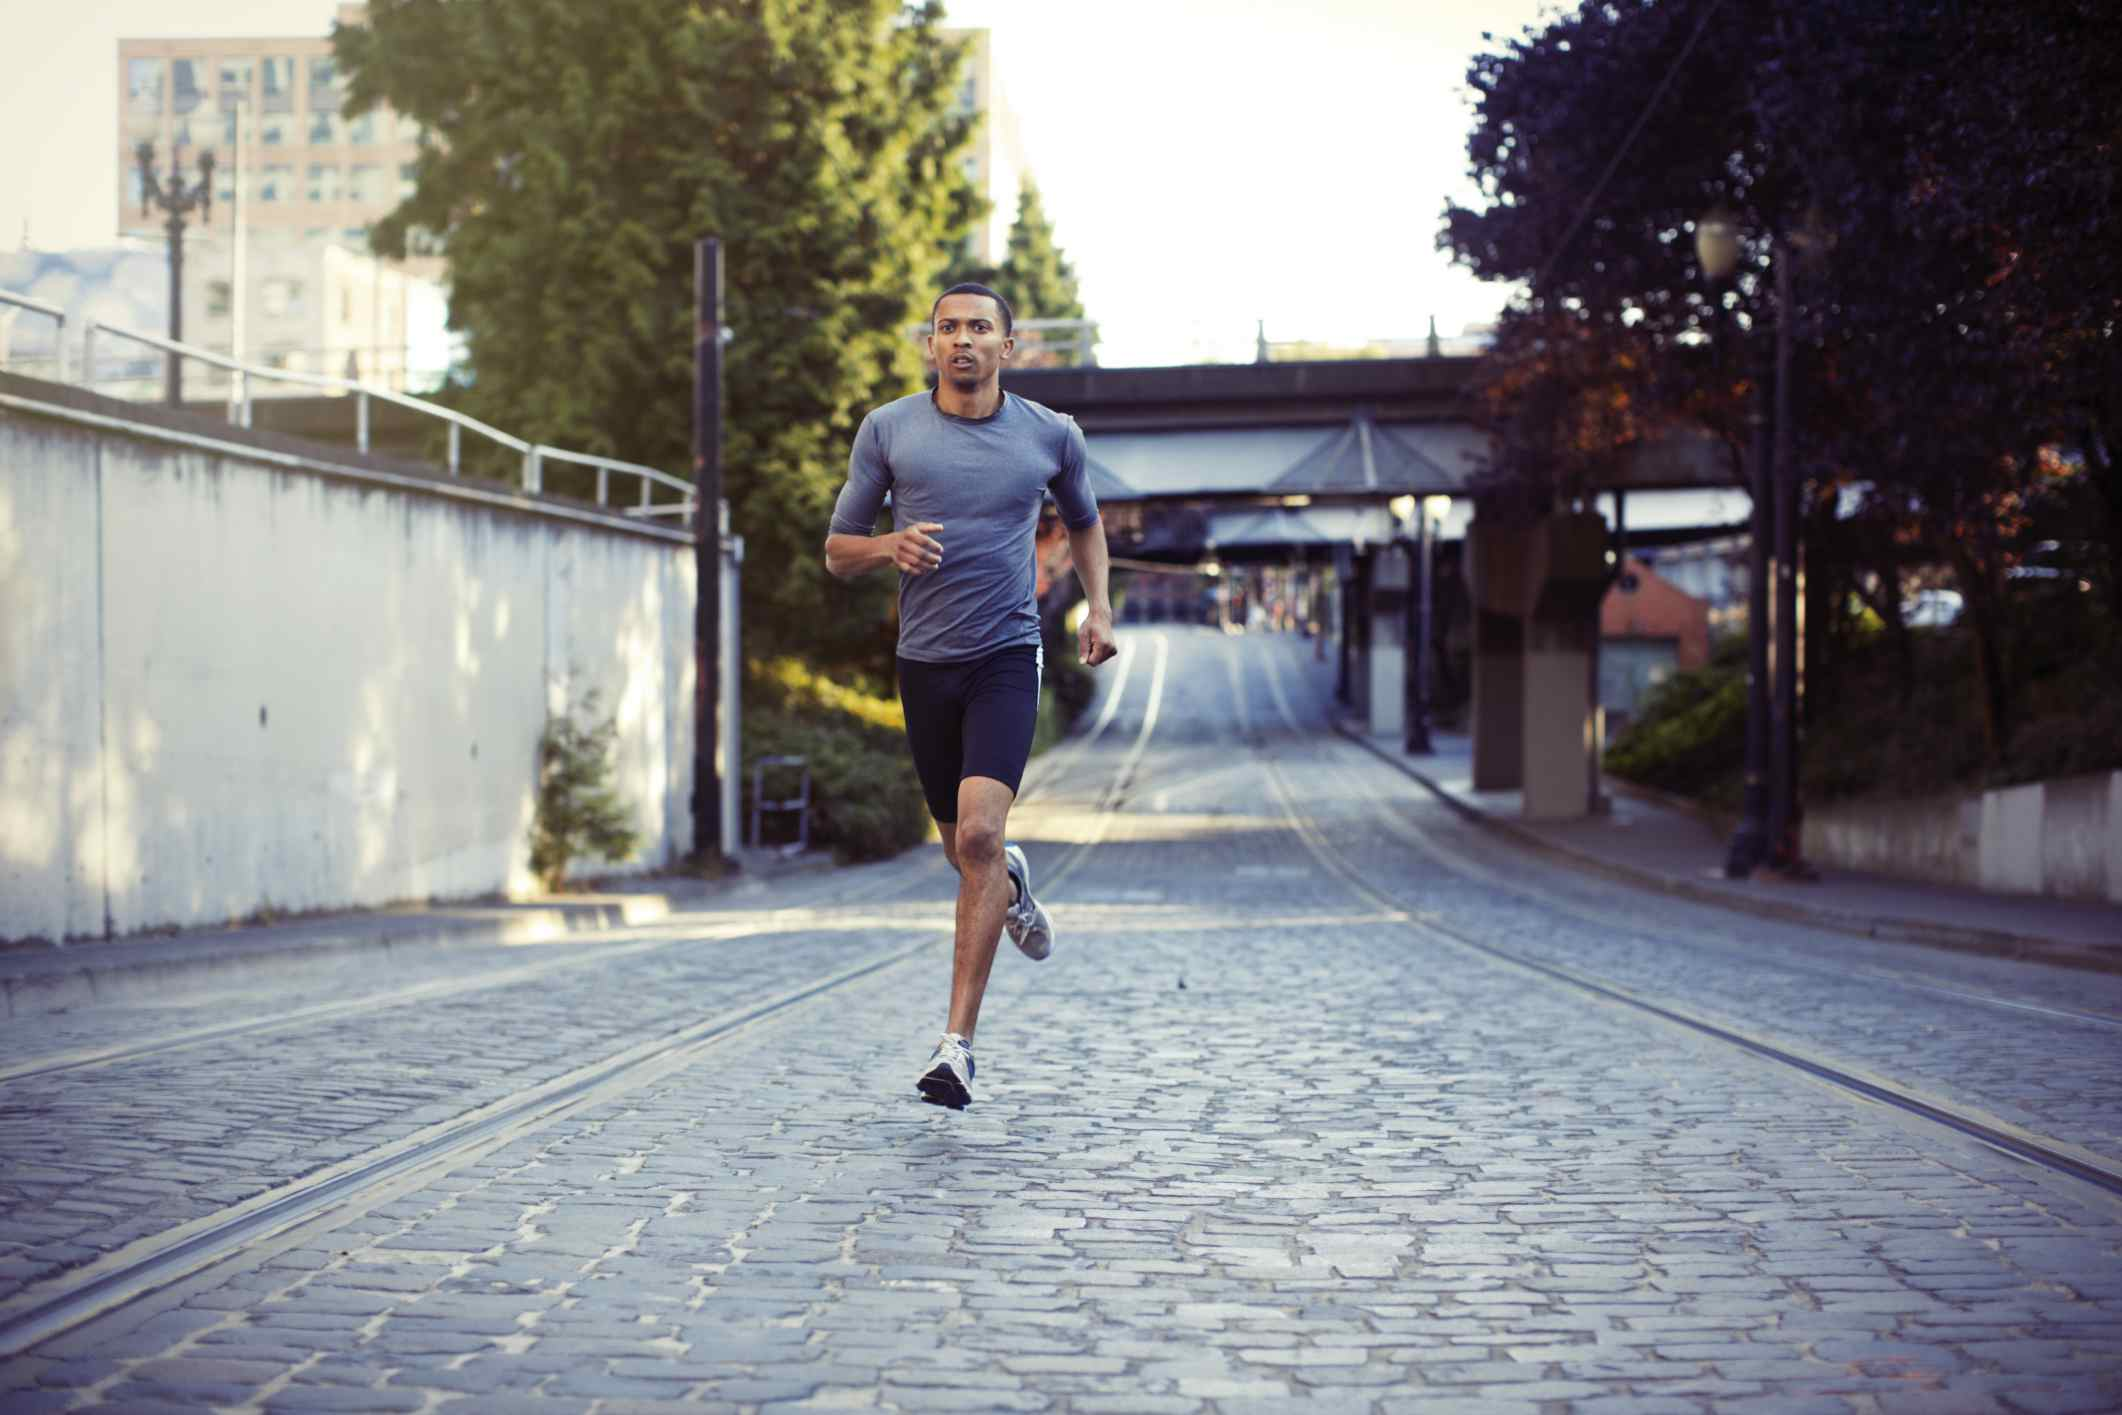 Tips For Proper Running Form The Best Ways To Run Power Outdoors Page 1 Of 2 Man In City